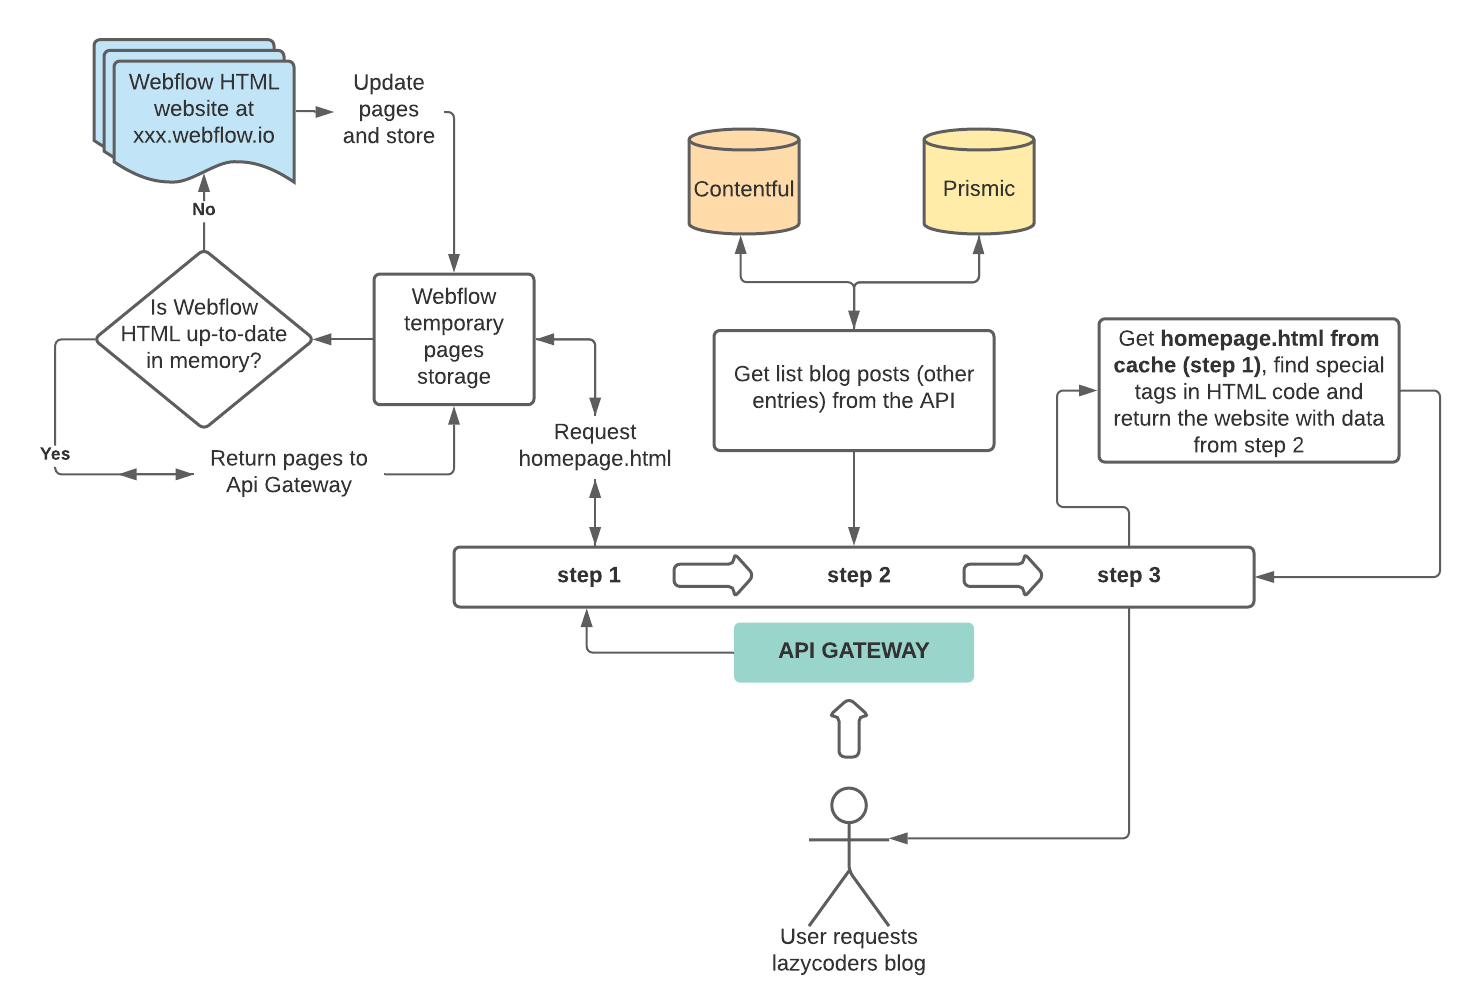 Webflow and Contentful architecture